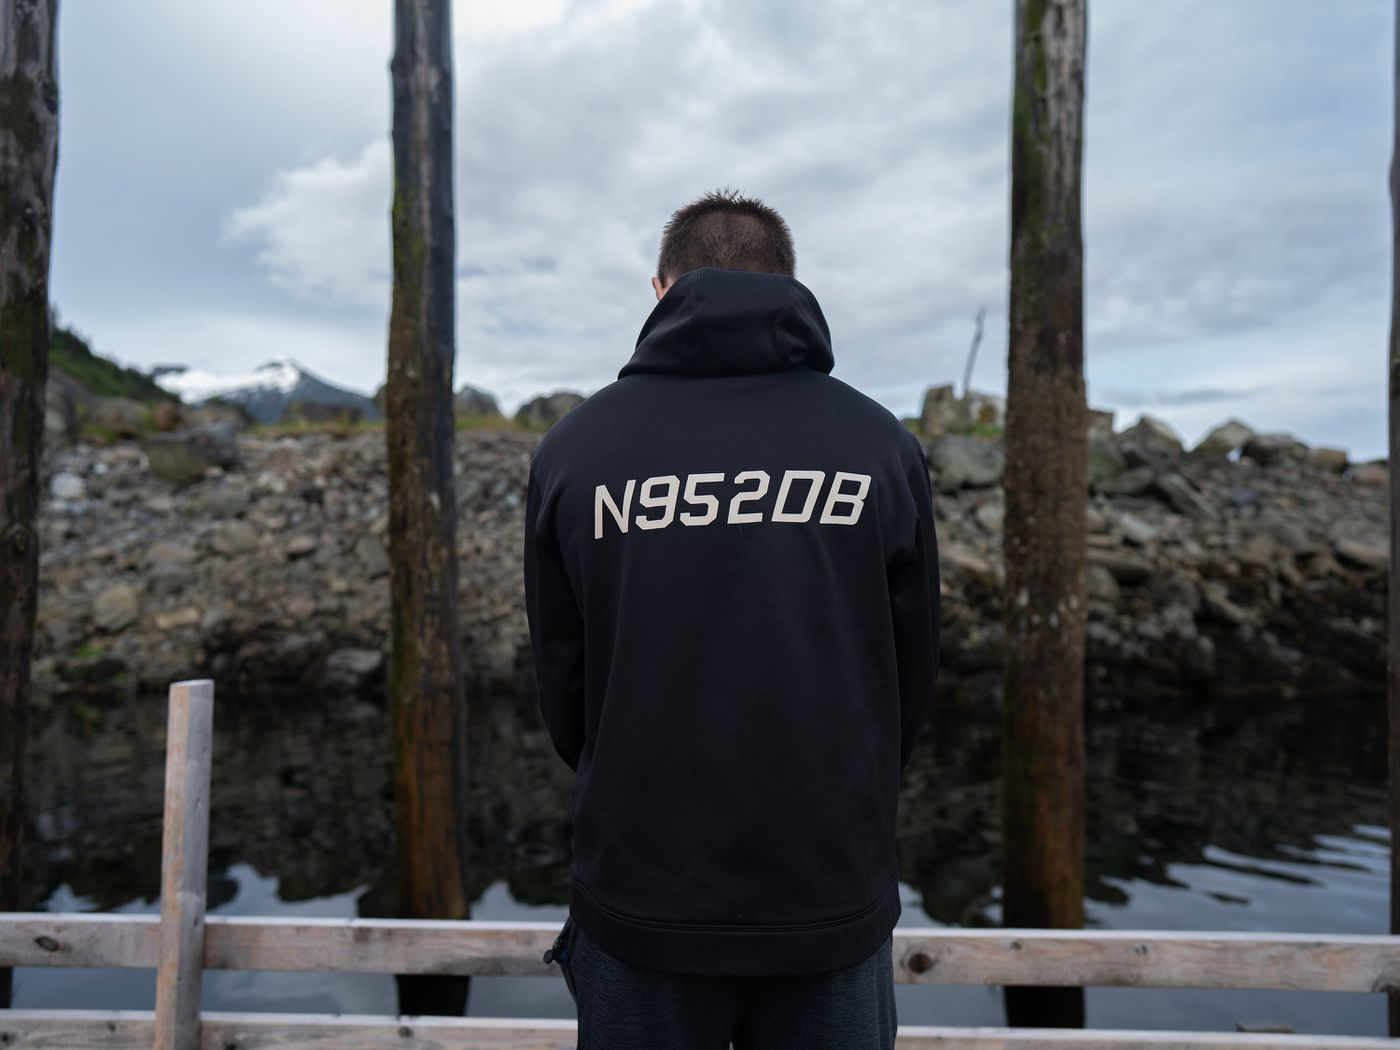 Randy Sullivan's son, Spencer, wears a hoodie with the tail number of his late father's plane printed on the back. (Ash Adams for ProPublica)